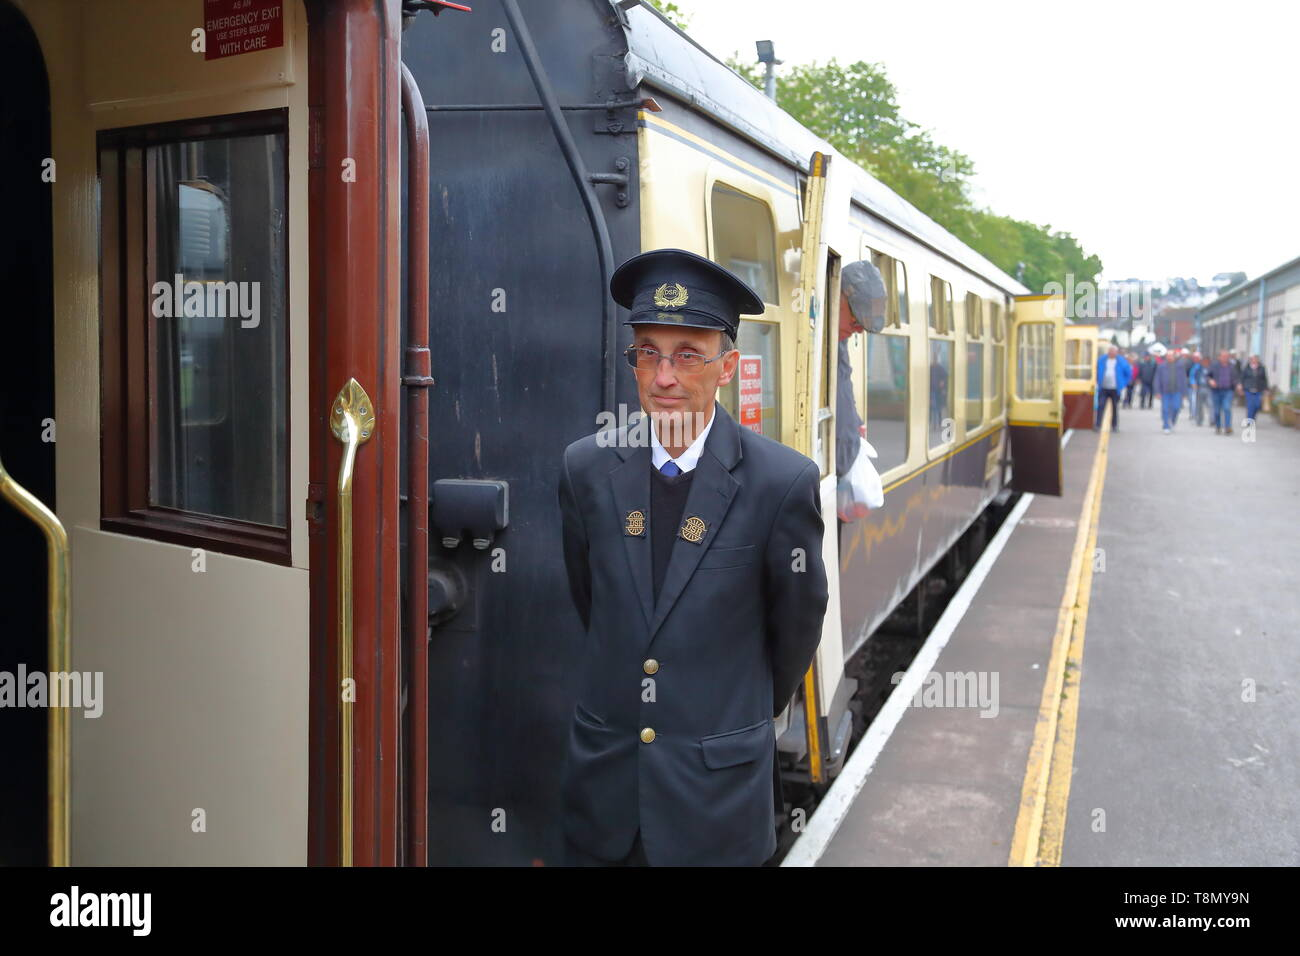 A conductor standing on the platform next to the British Railways steam train at Paignton station, Devon, UK - Stock Image